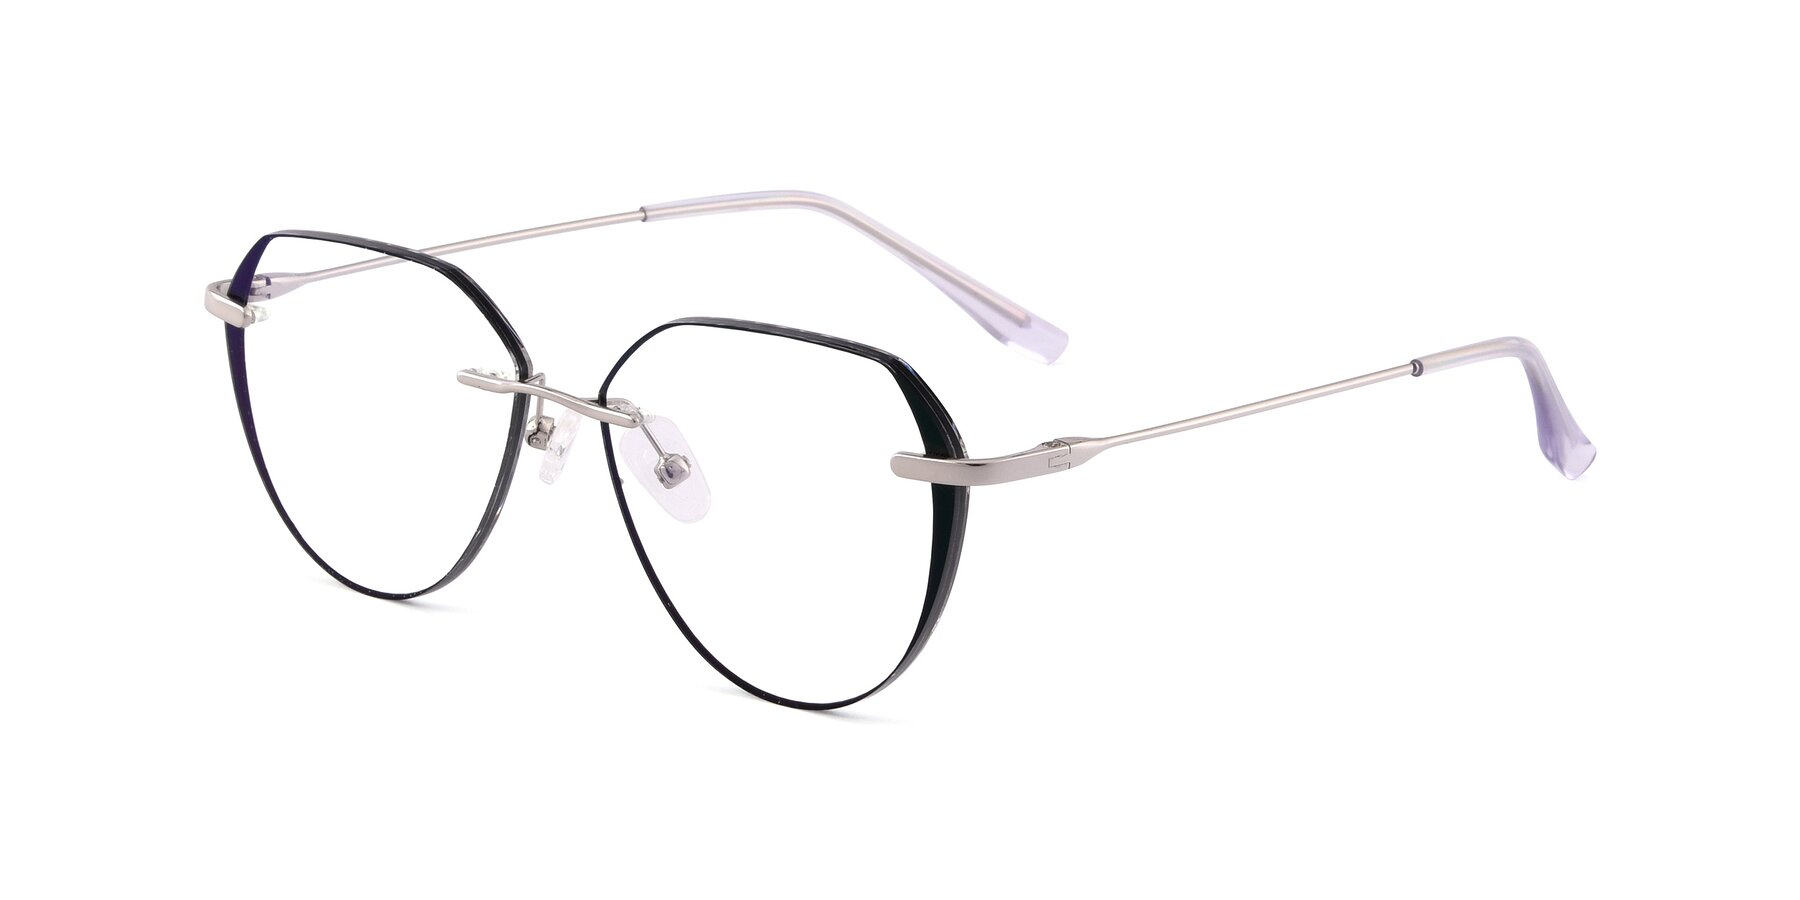 Angle of 88563 in Silver-Black with Clear Eyeglass Lenses